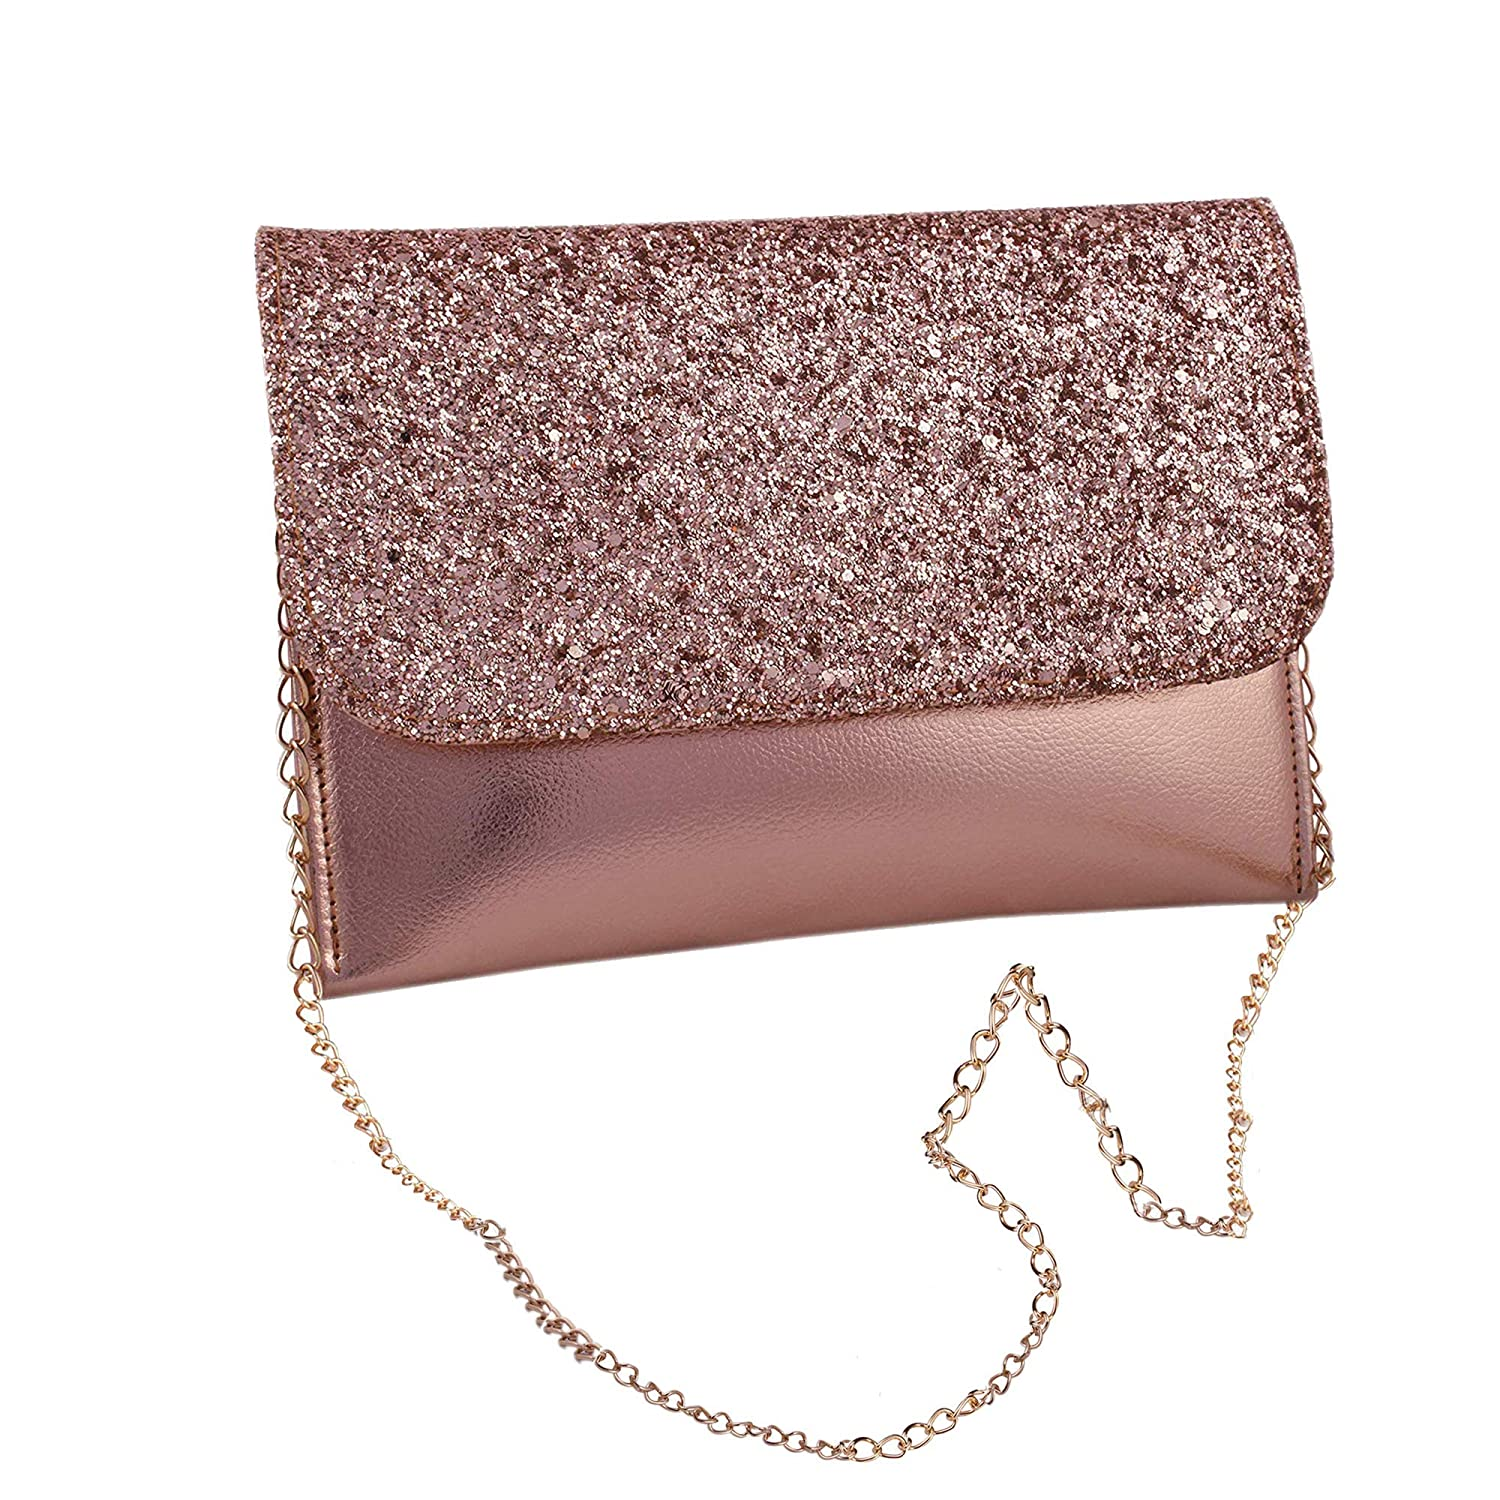 Latest Design Cross body Chain Sling bag for Women and Girls College Office Clutches/Handbag/Chained Sling belt stylish latest Bag